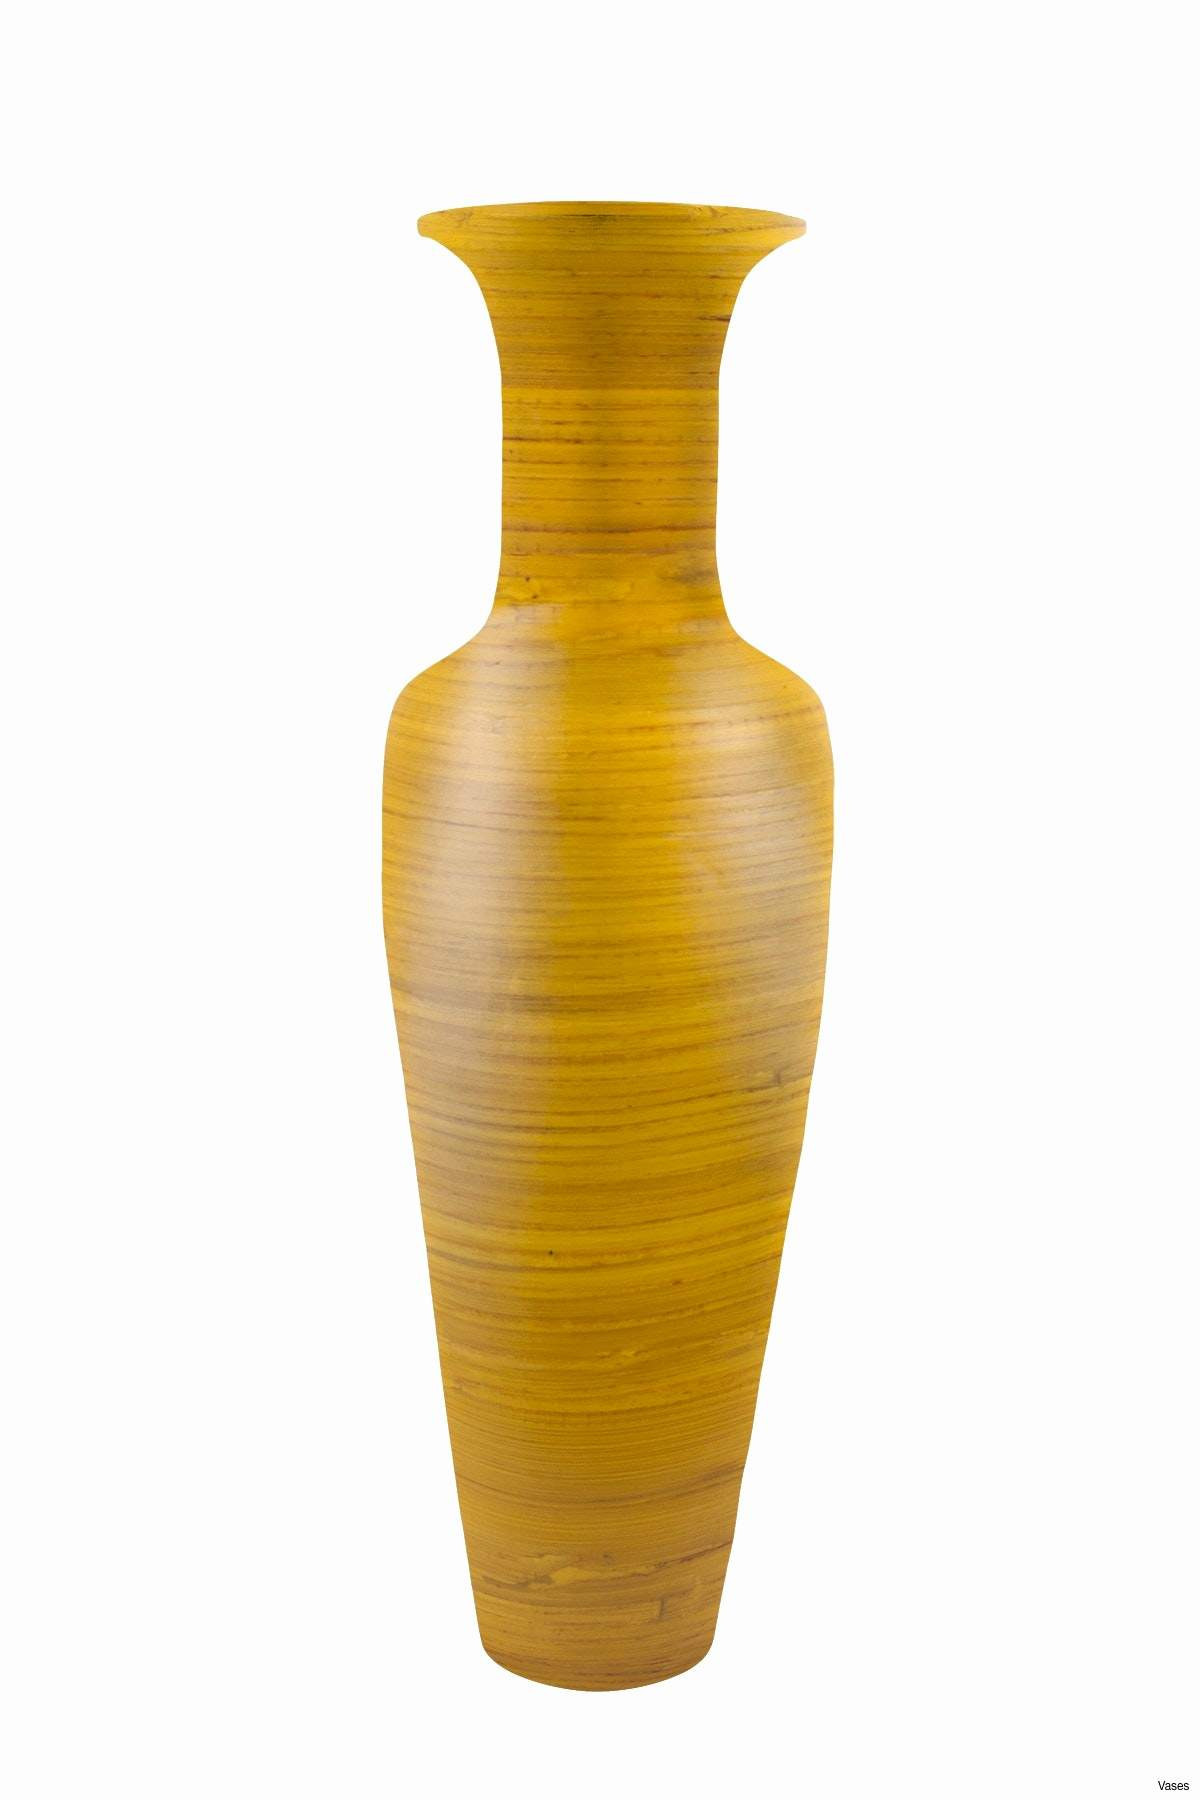 yellow ceramic vase of ceramic vase set collection area floor rugs new joaquin gray vases intended for area floor rugs new joaquin gray vases set 3 2h pottery floor i 0d